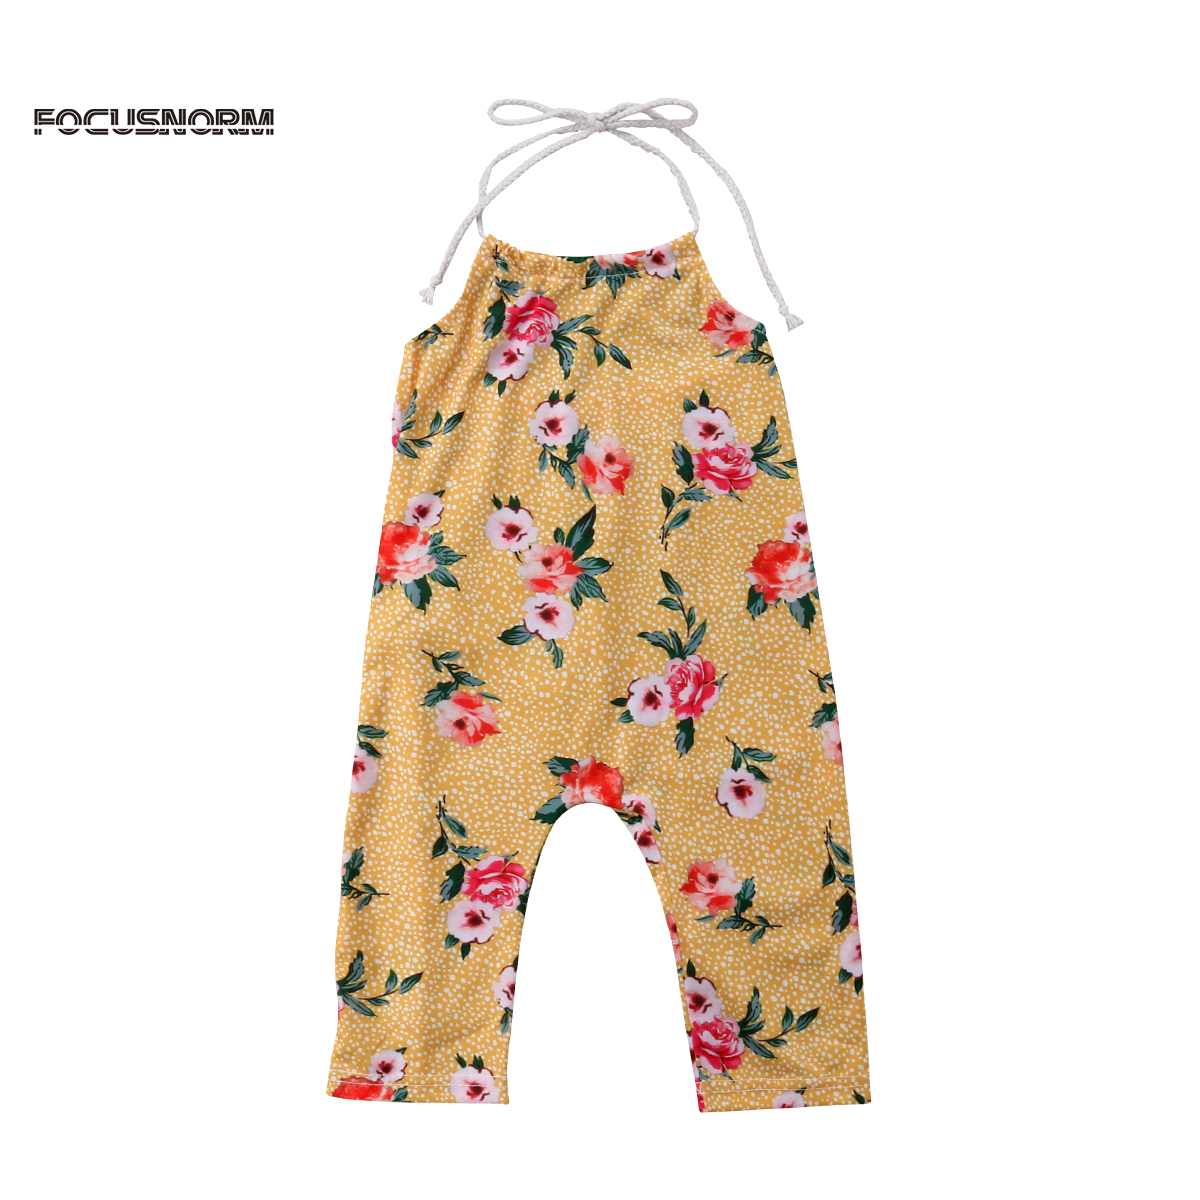 Summer Newborn Baby Girl Romper Floral Backless Belted One Piece Jumpsuit Outfit Clothes